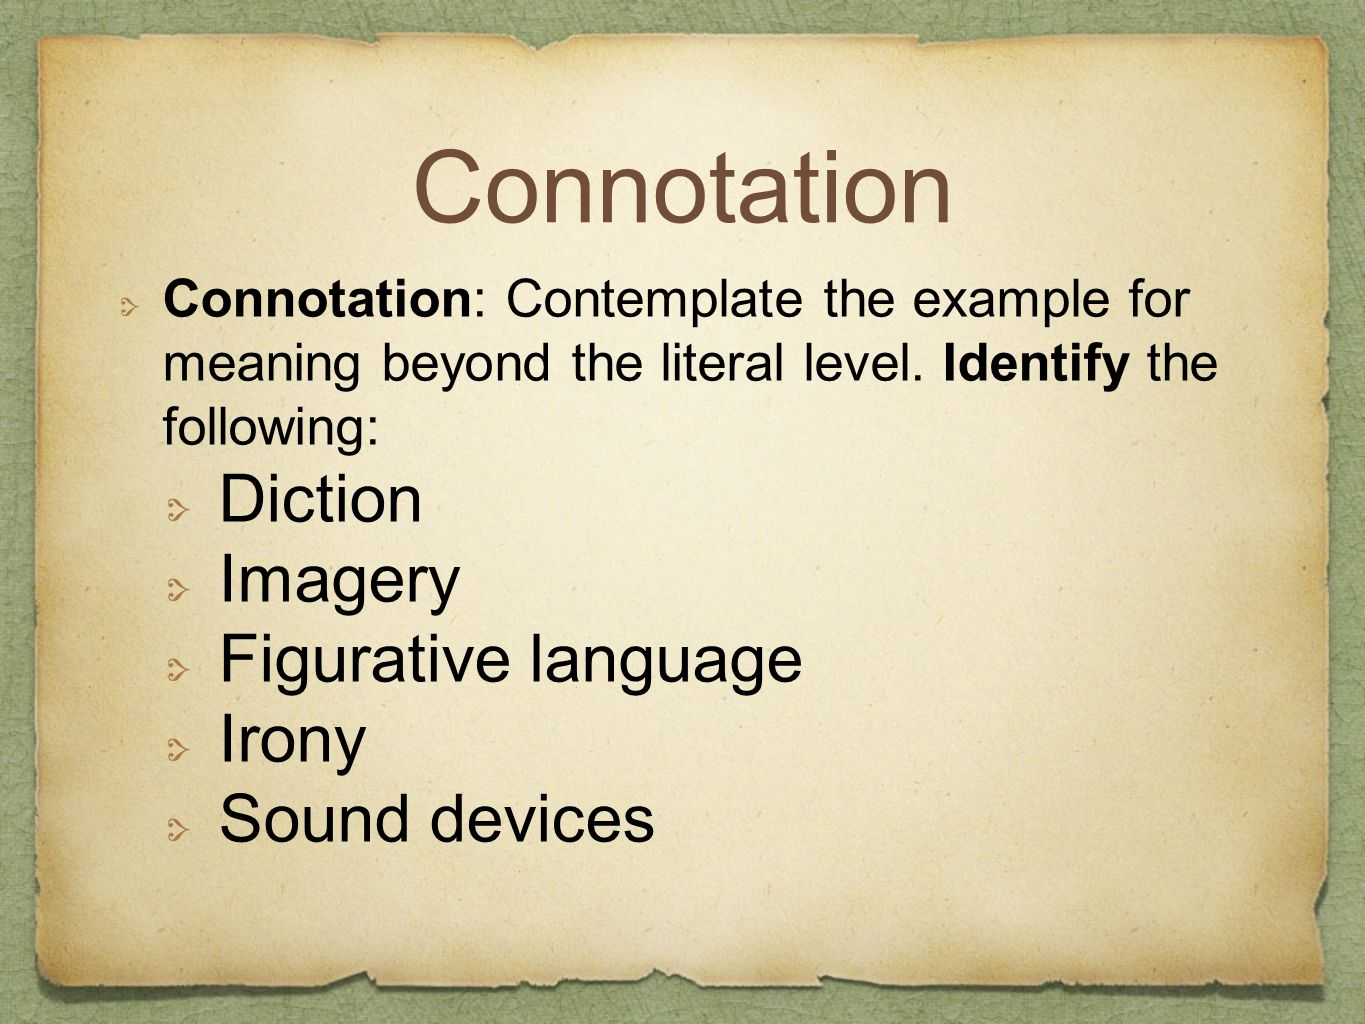 Connotation Diction Imagery Figurative language Irony Sound devices